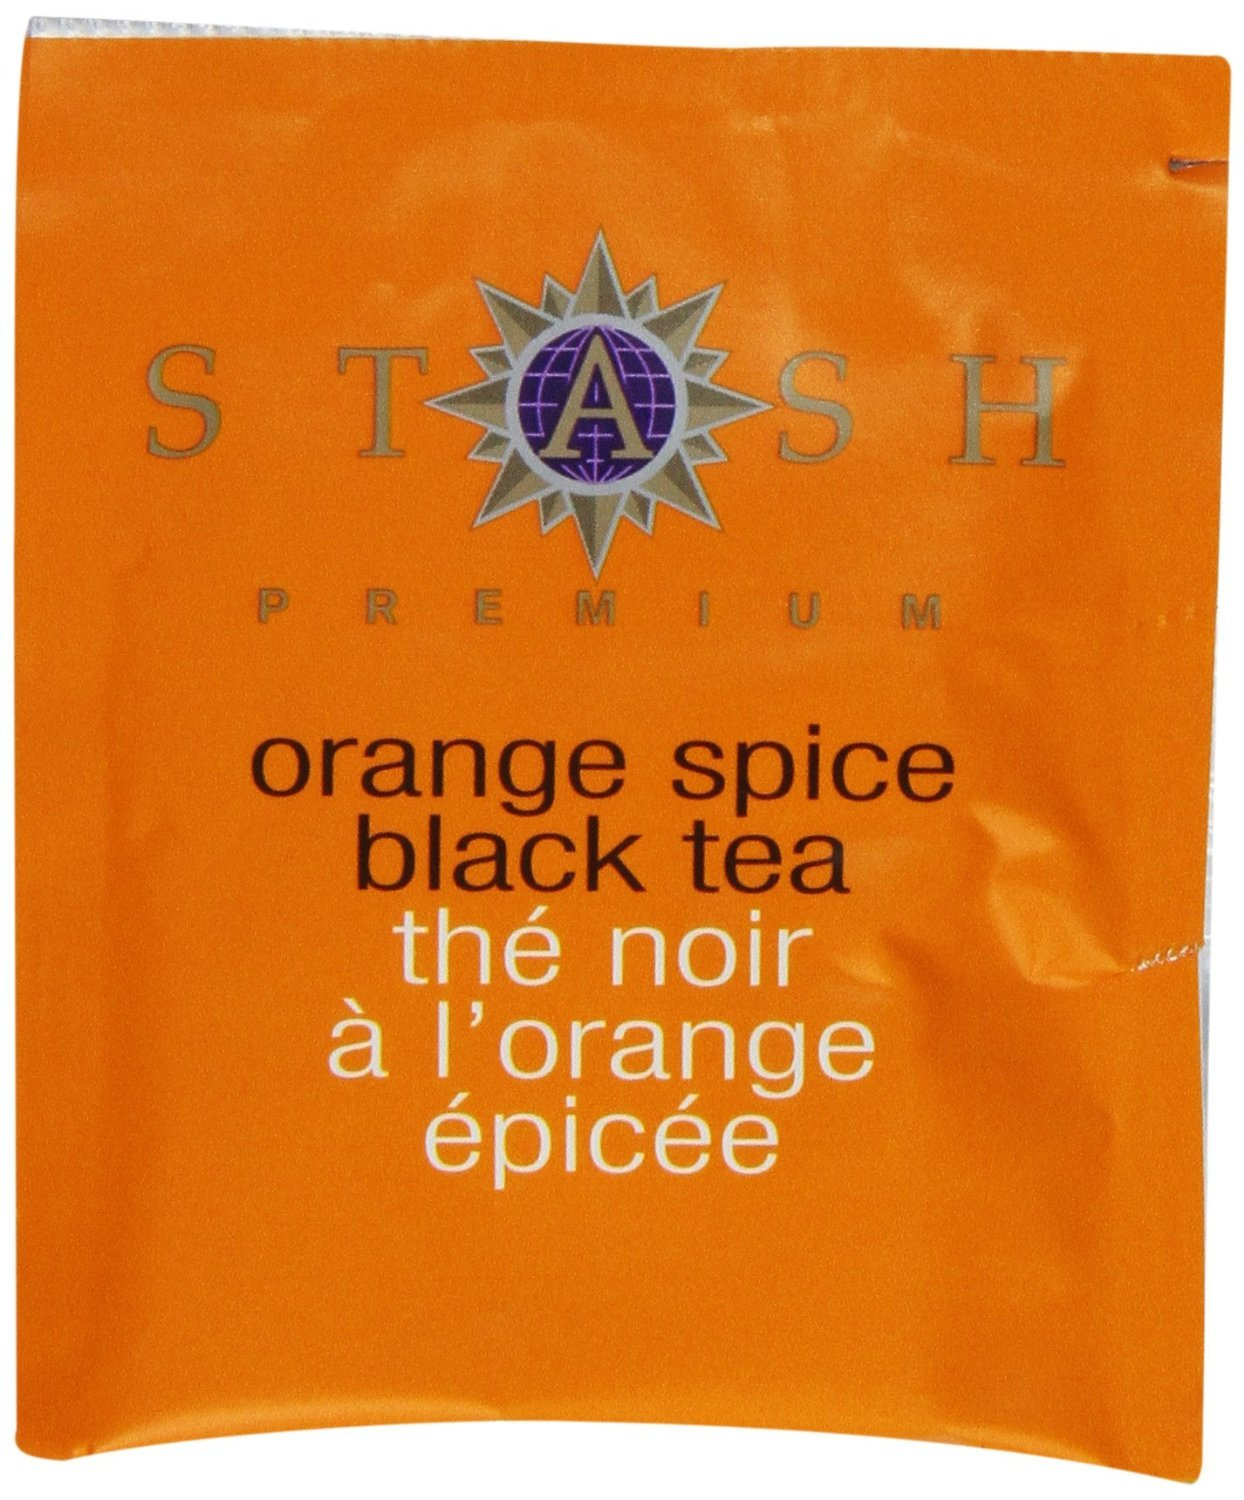 Stash Tea Orange Spice Black Tea 10 Count Tea Bags in Foil (Pack of 12) (packaging may vary) Individual Black Tea Bags for Use in Teapots Mugs or Cups, Brew Hot Tea or Iced Tea by Stash Tea (Image #4)